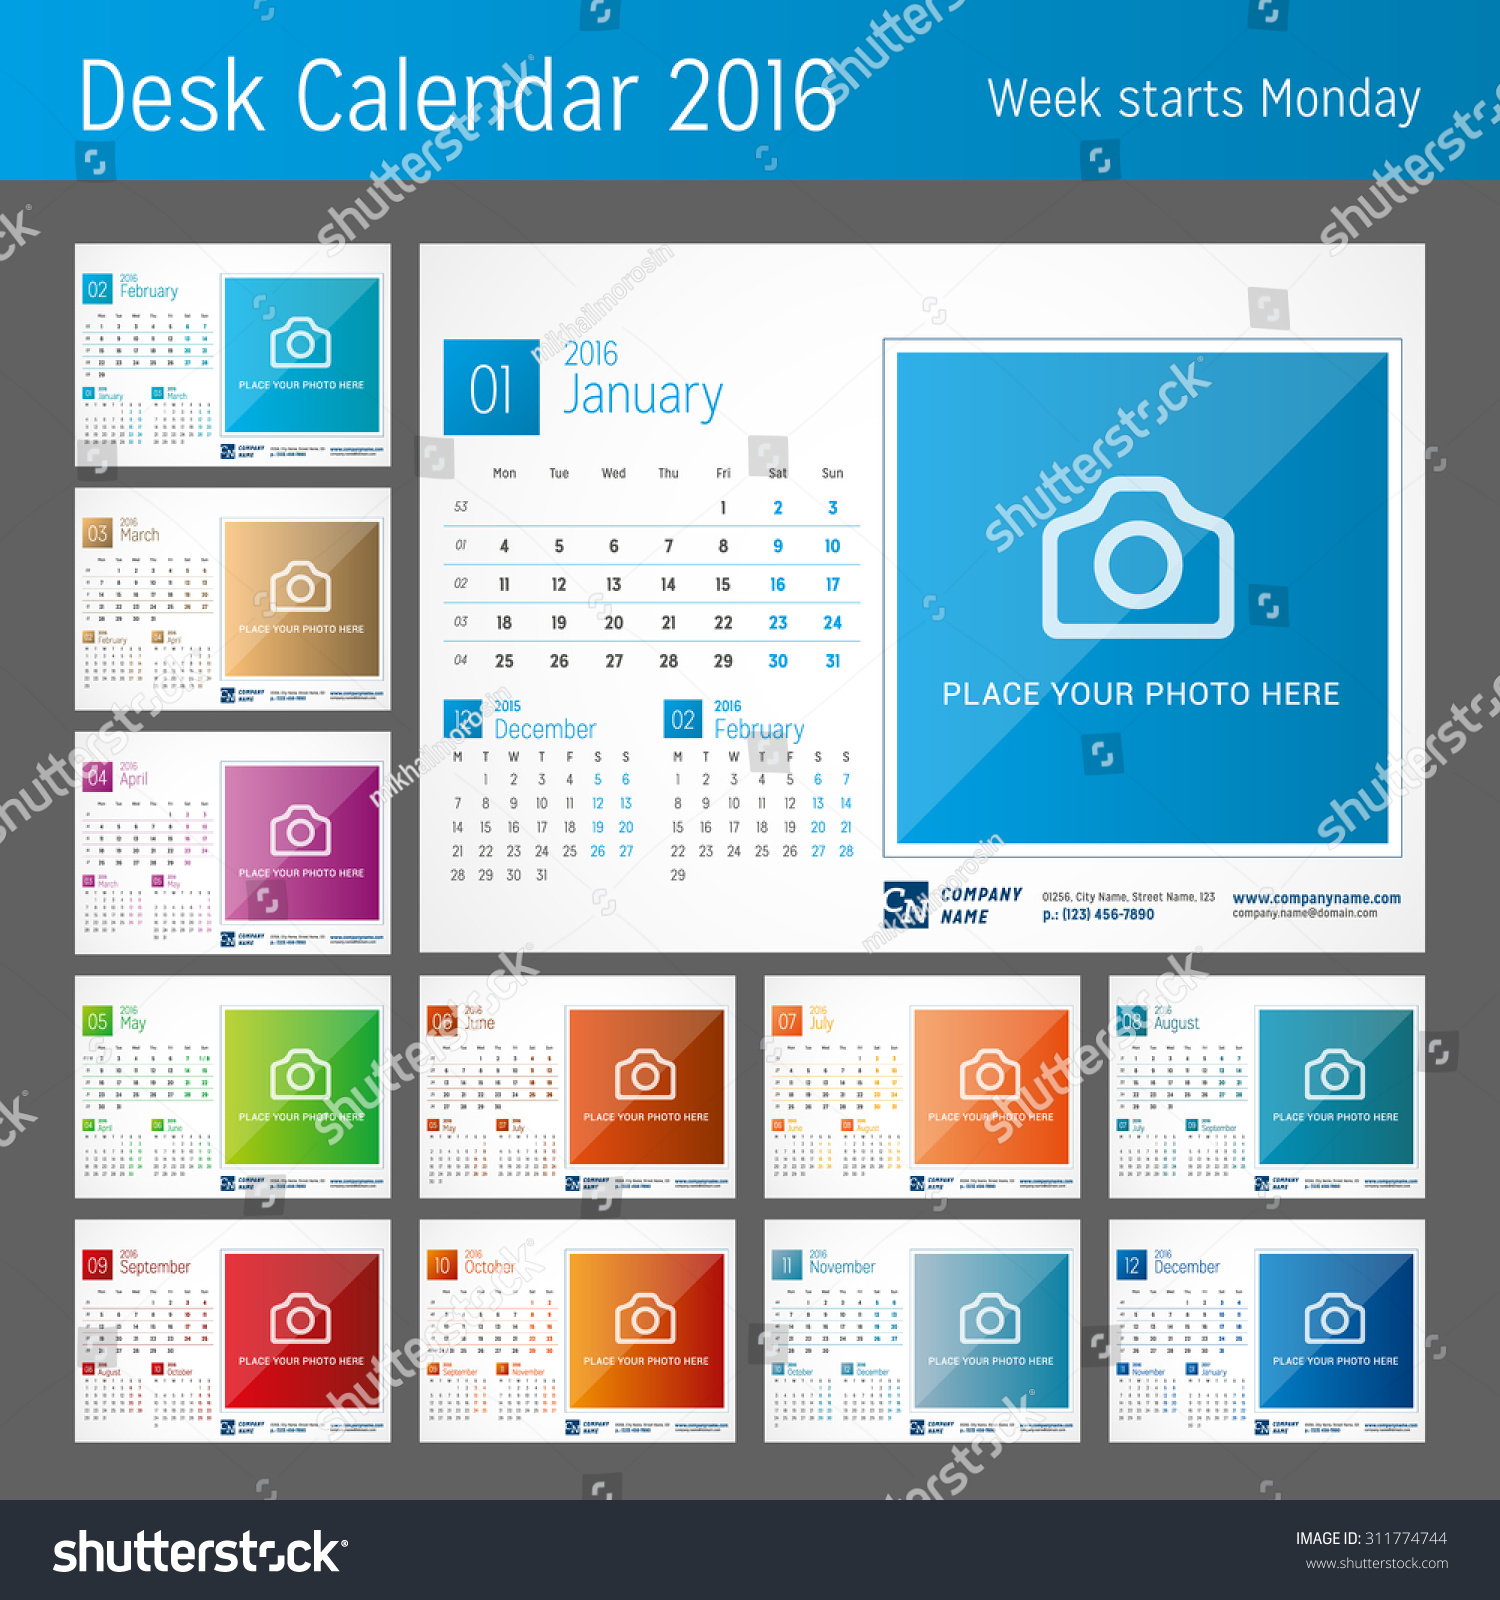 Table Calendar 2016 : Table calendar design template imgkid the